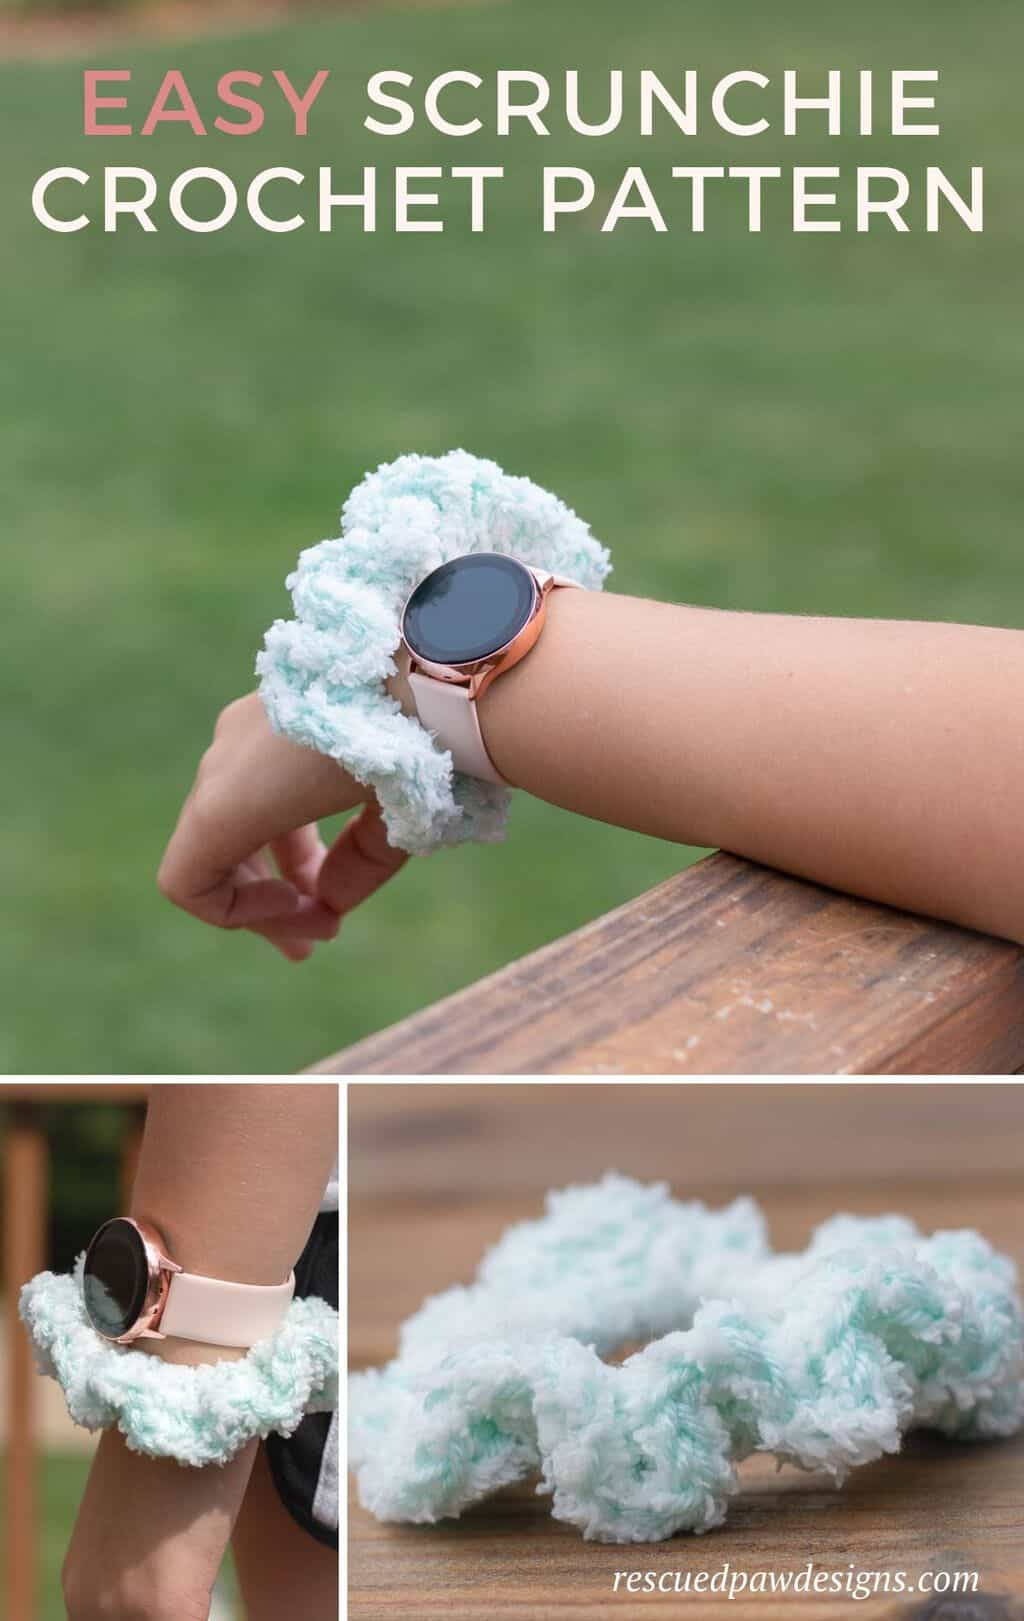 Crochet Scrunchie Hair and Wrist Pattern